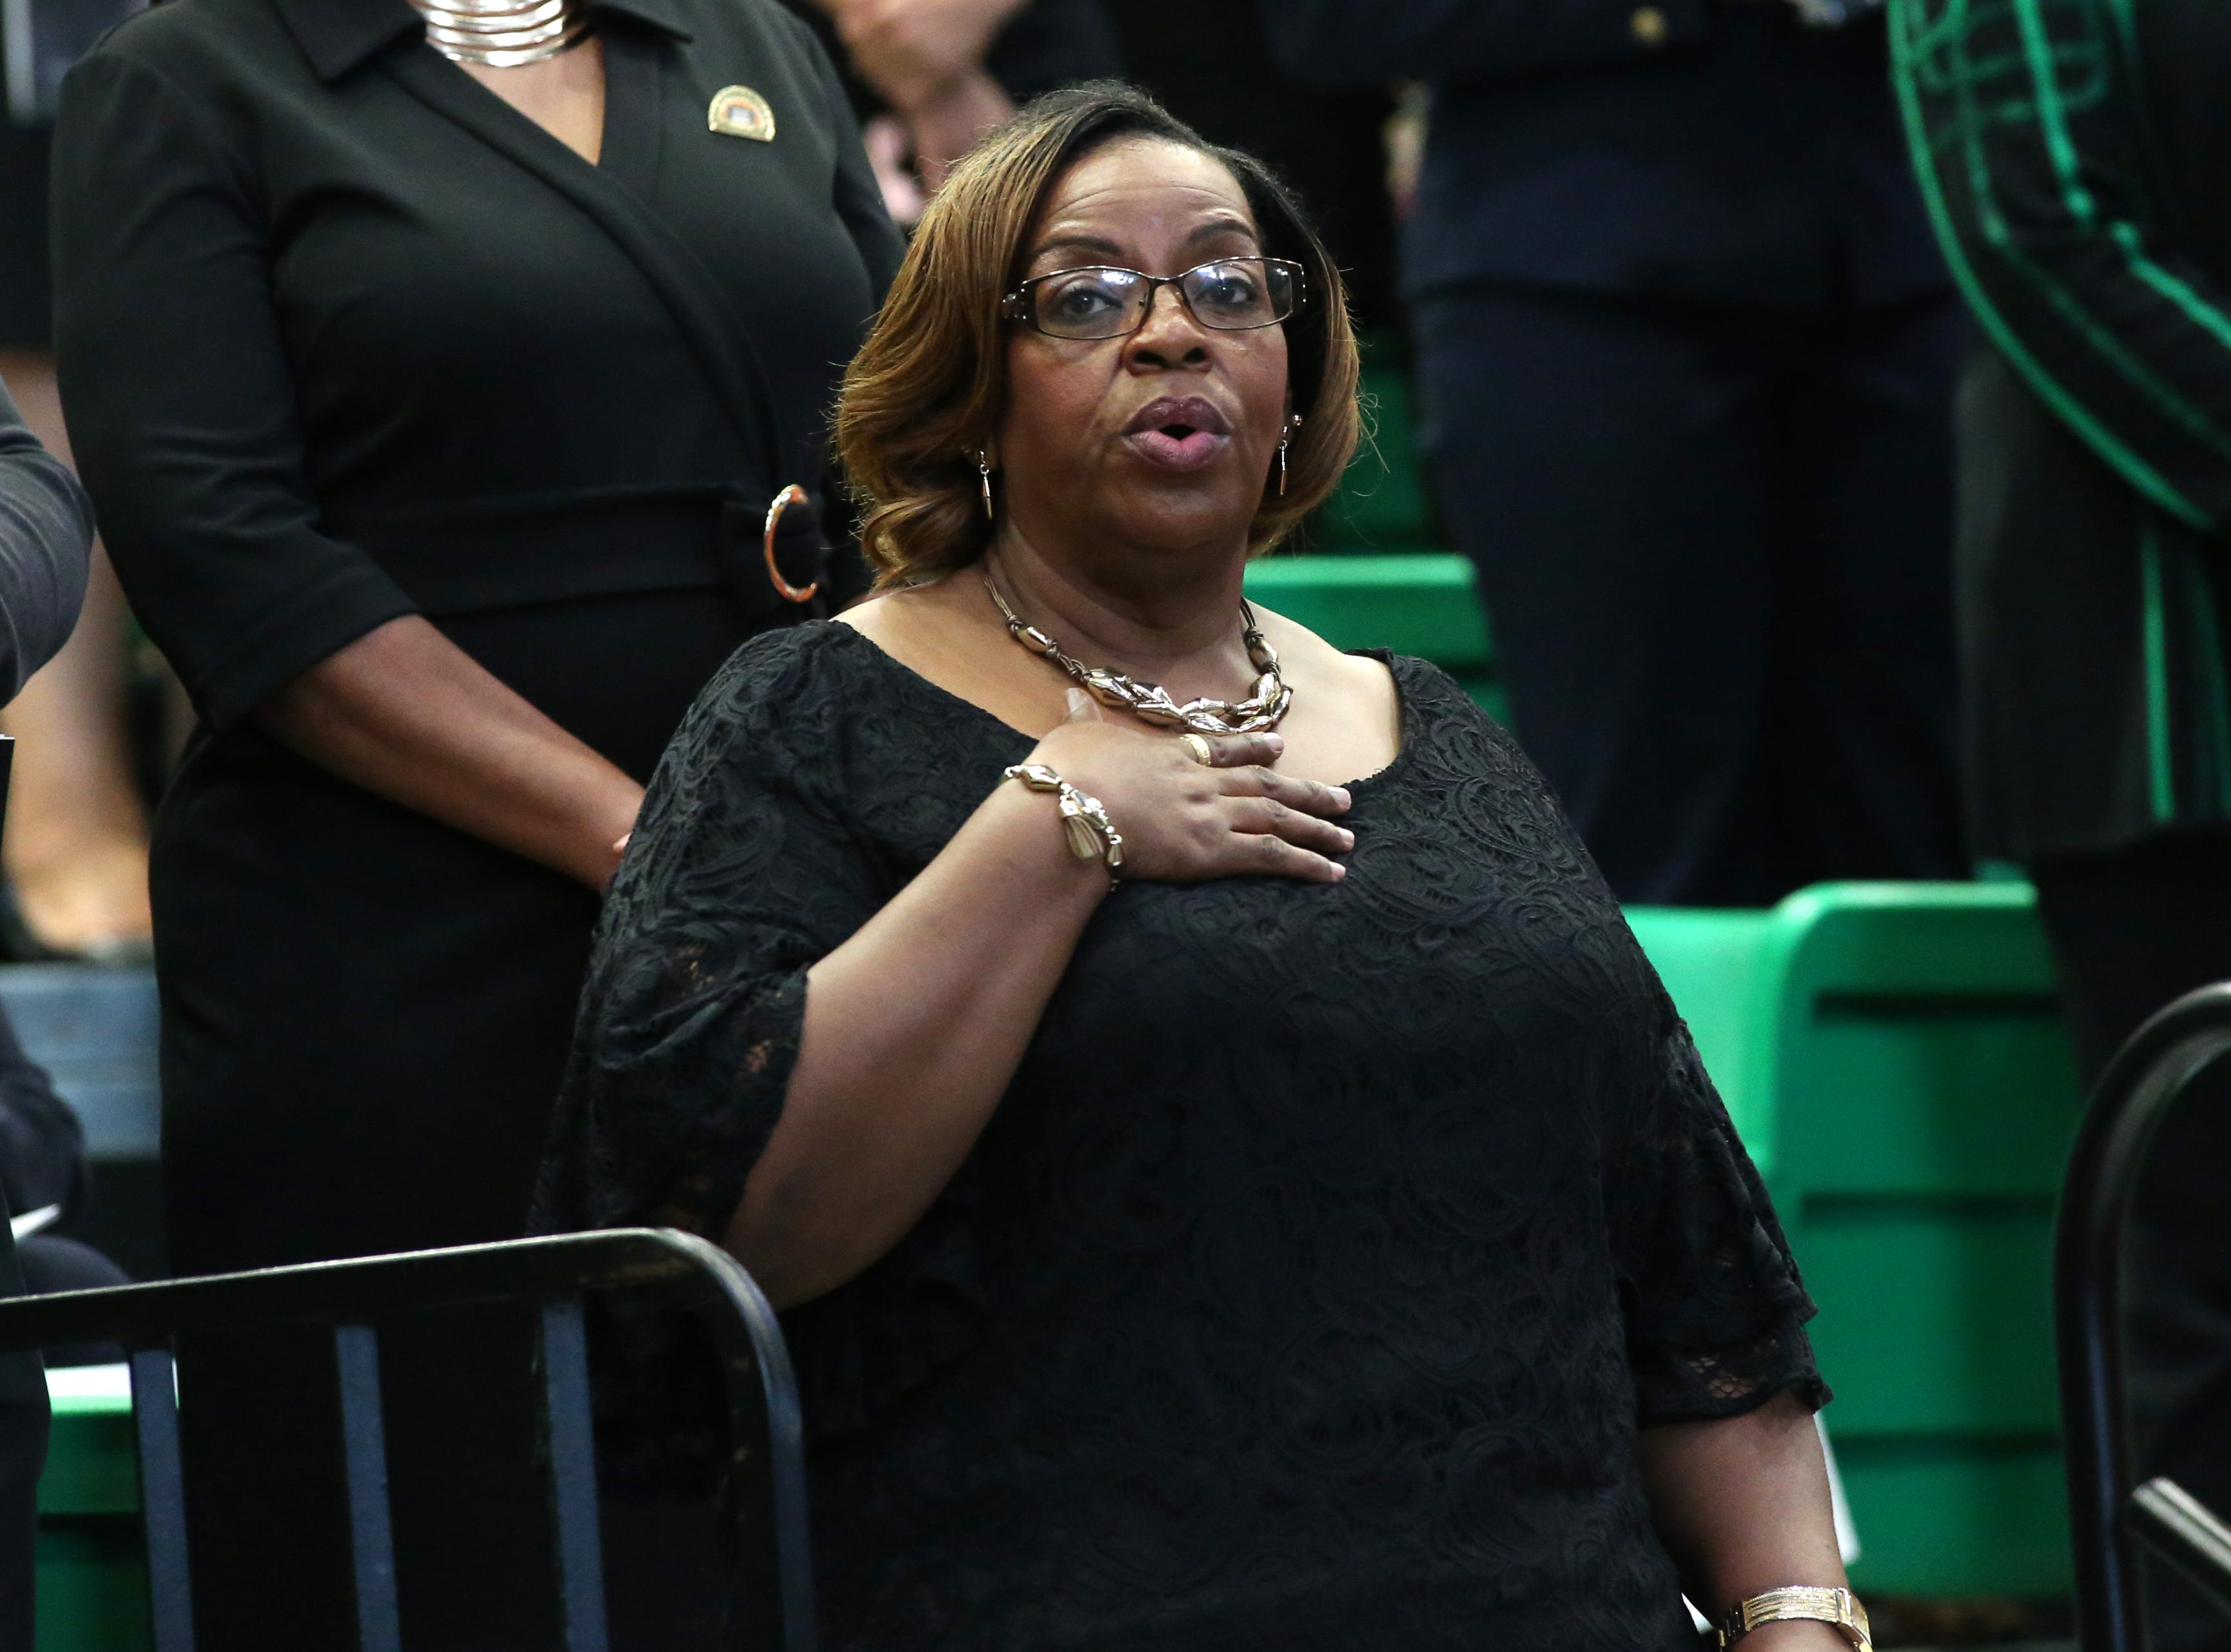 FAMU Alumni, current students, and supporters attend the 2018 Presidents' Inauguration for Larry Robison at the Lawson Center on Friday, Nov. 9, 2018.